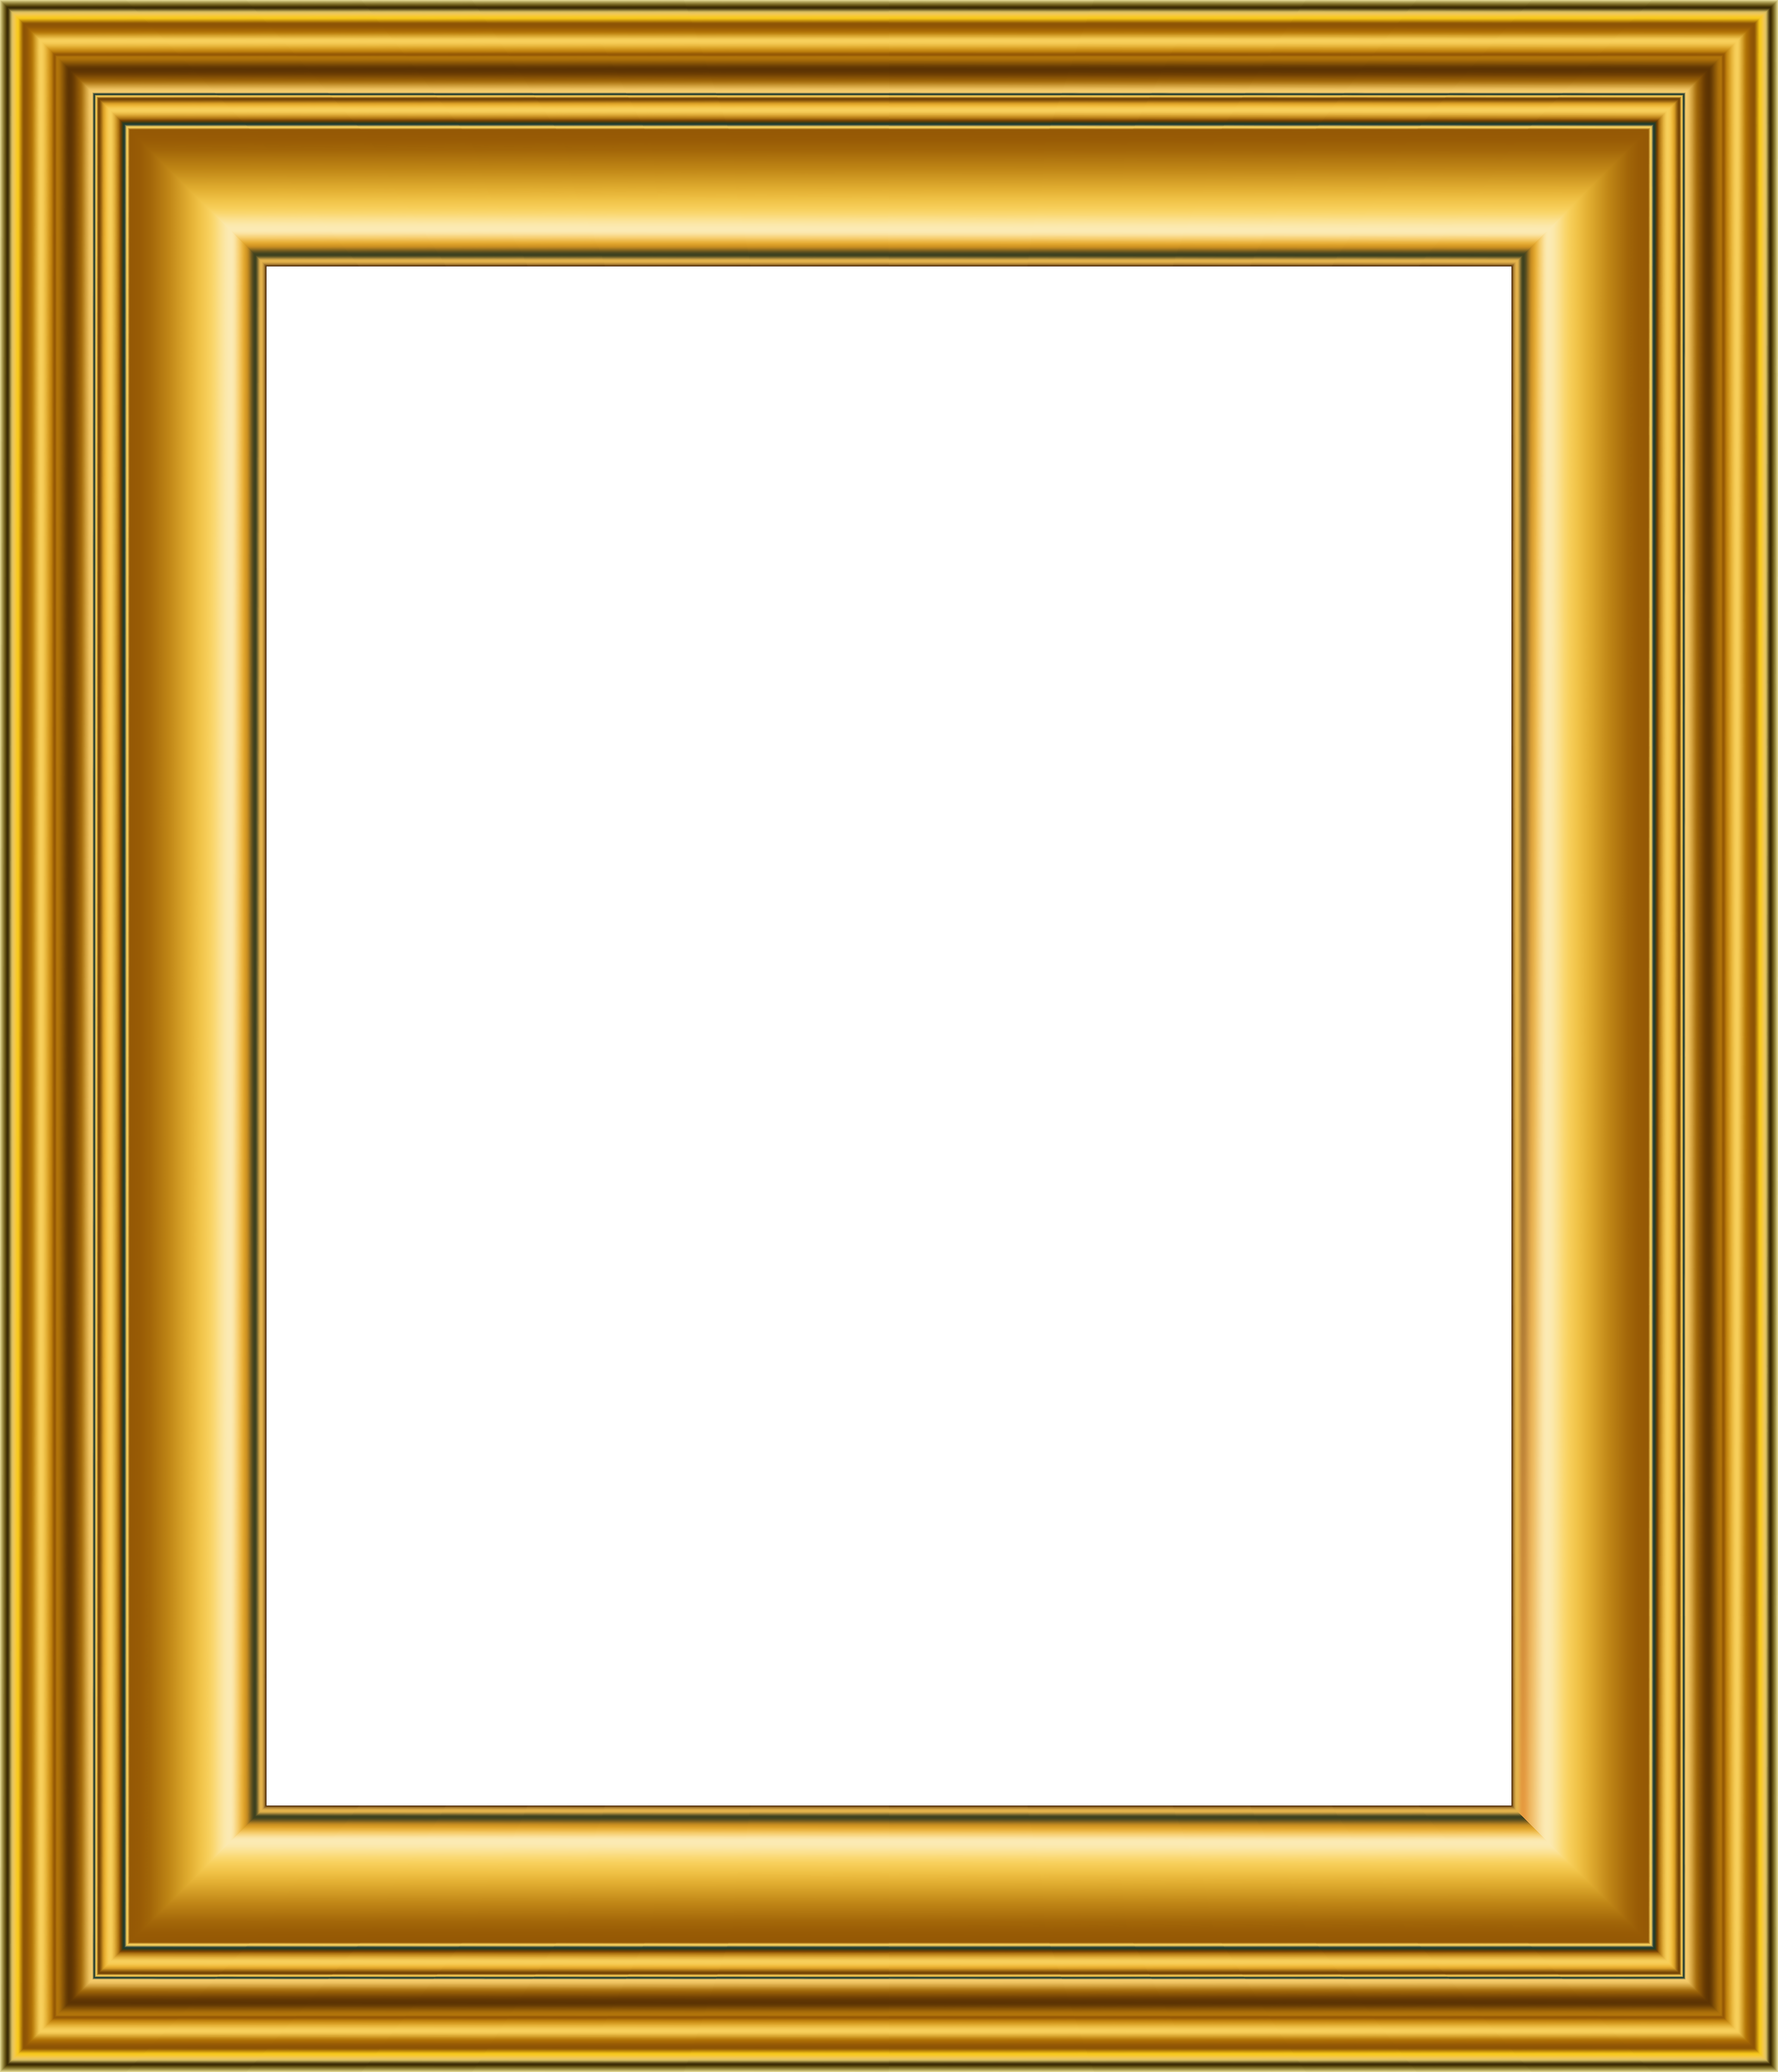 Frame for photoshop with yellow dodate pinterest photoshop frame for photoshop with yellow jeuxipadfo Images